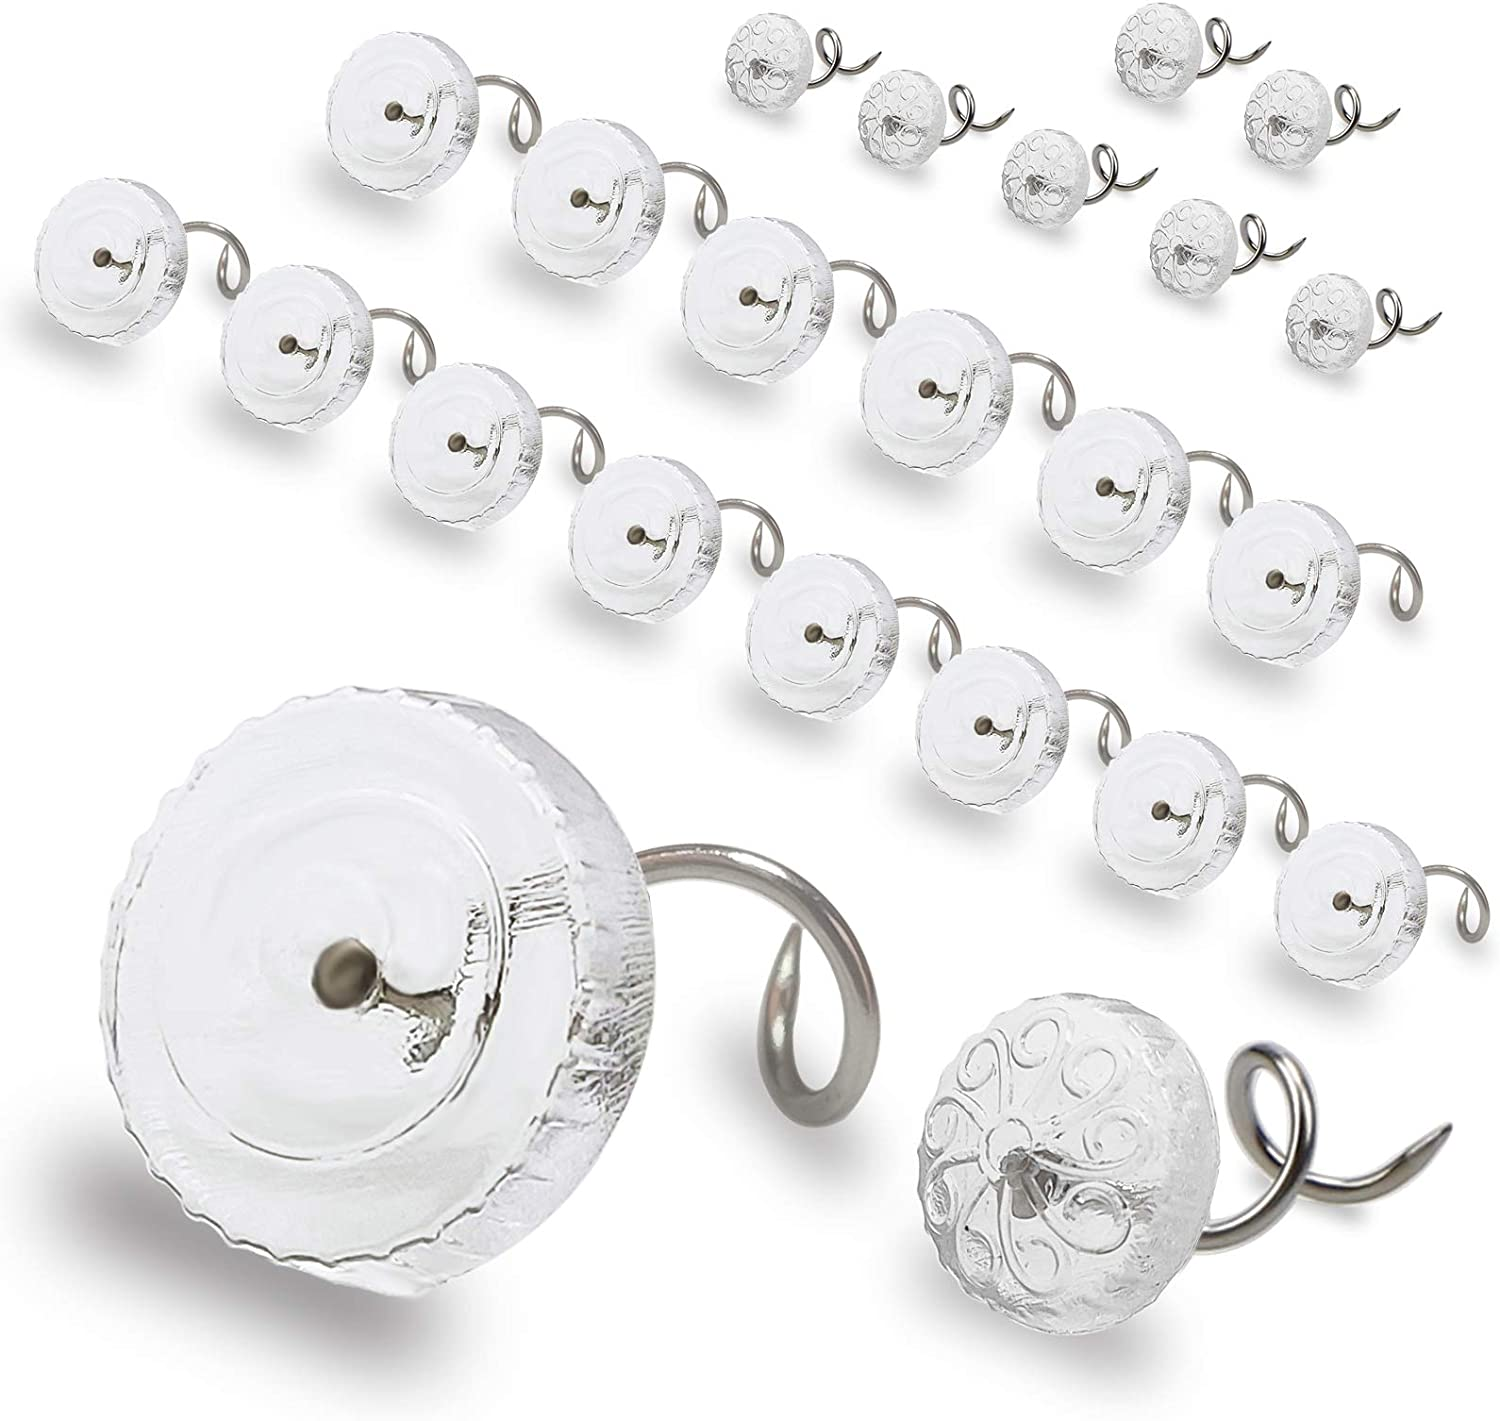 AZELMADE 120 PCS Bed Skirt Pins Lage 20PCS // Middle 100PCS Two Sizes Meet Various Needs Premium Twist Pins with Clear Heads for Upholstery Slipcovers and Bedskirts